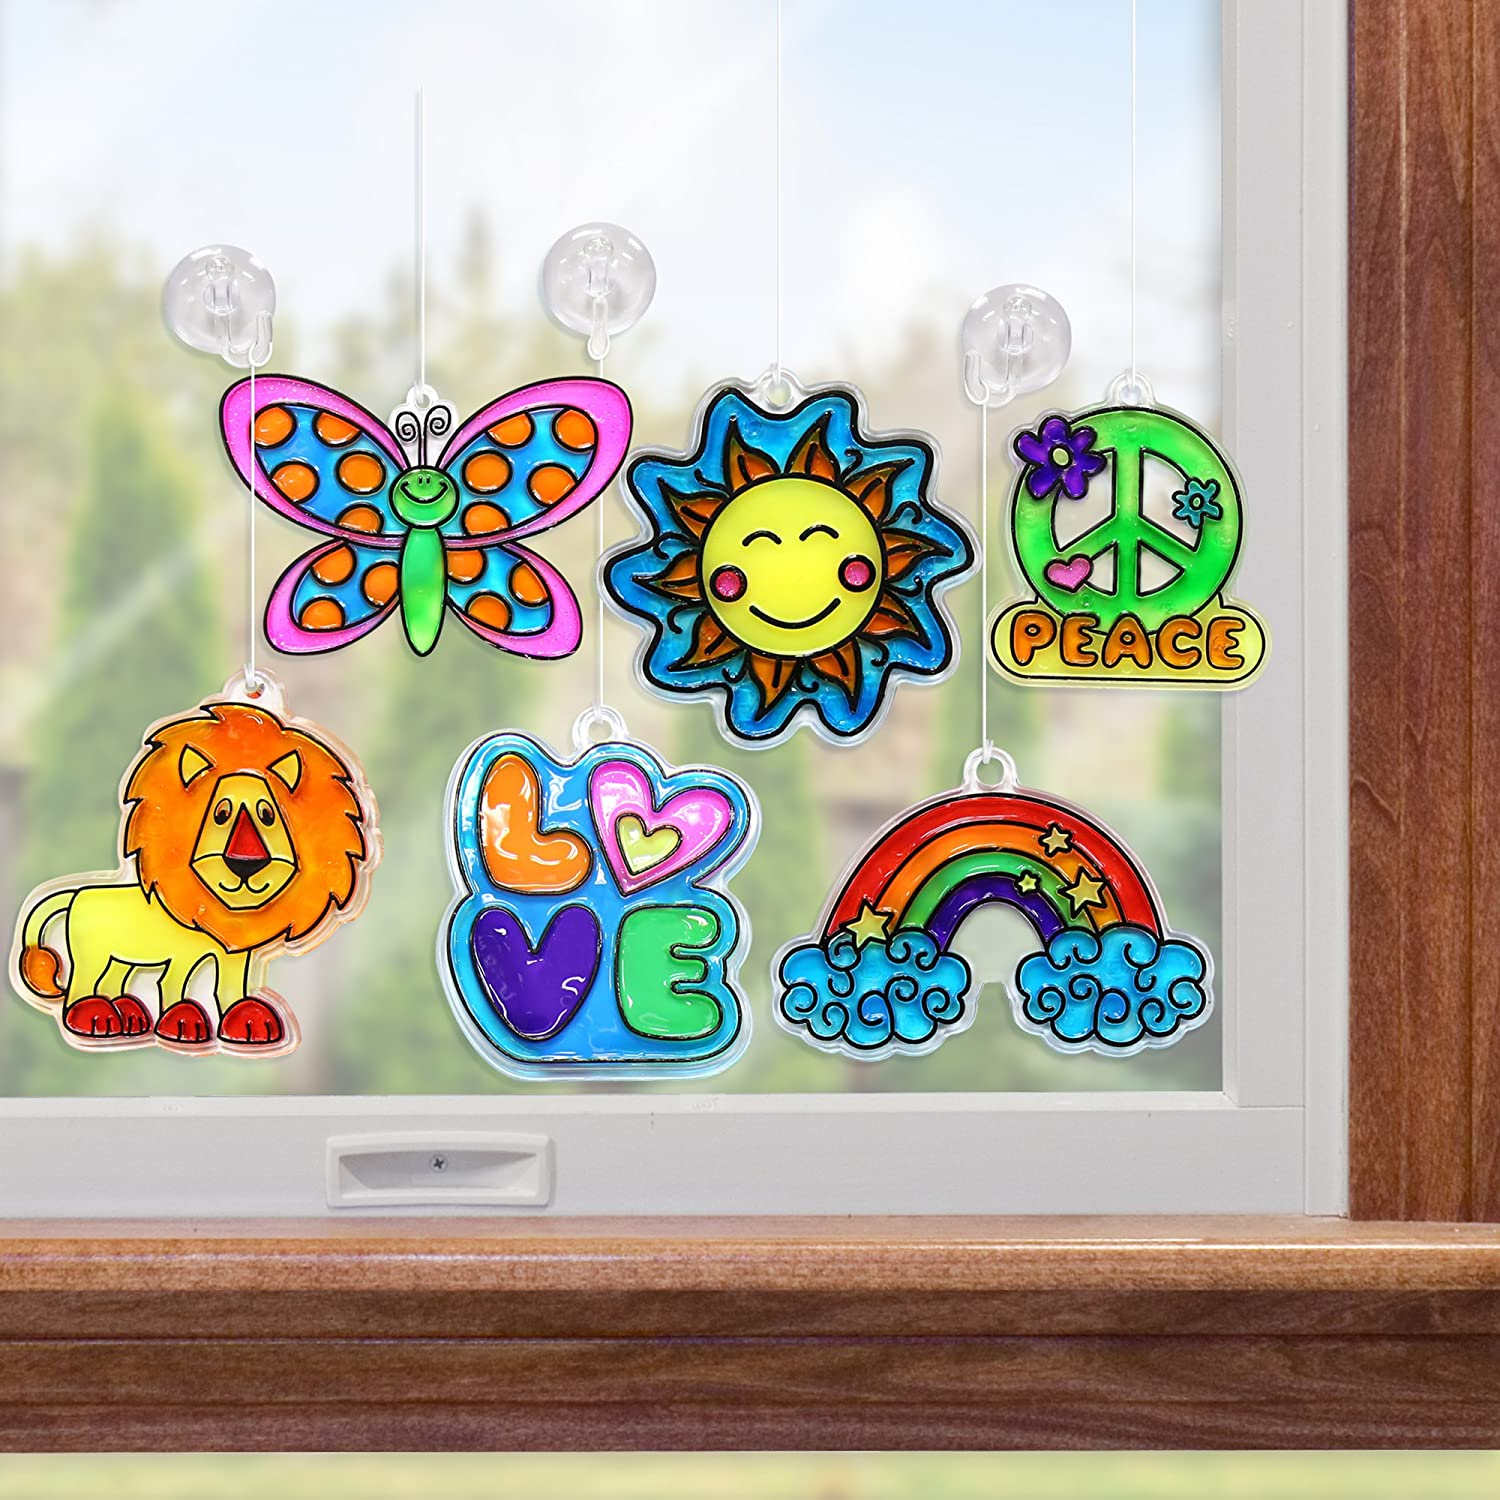 Made By Me Window Art ONLY $9.